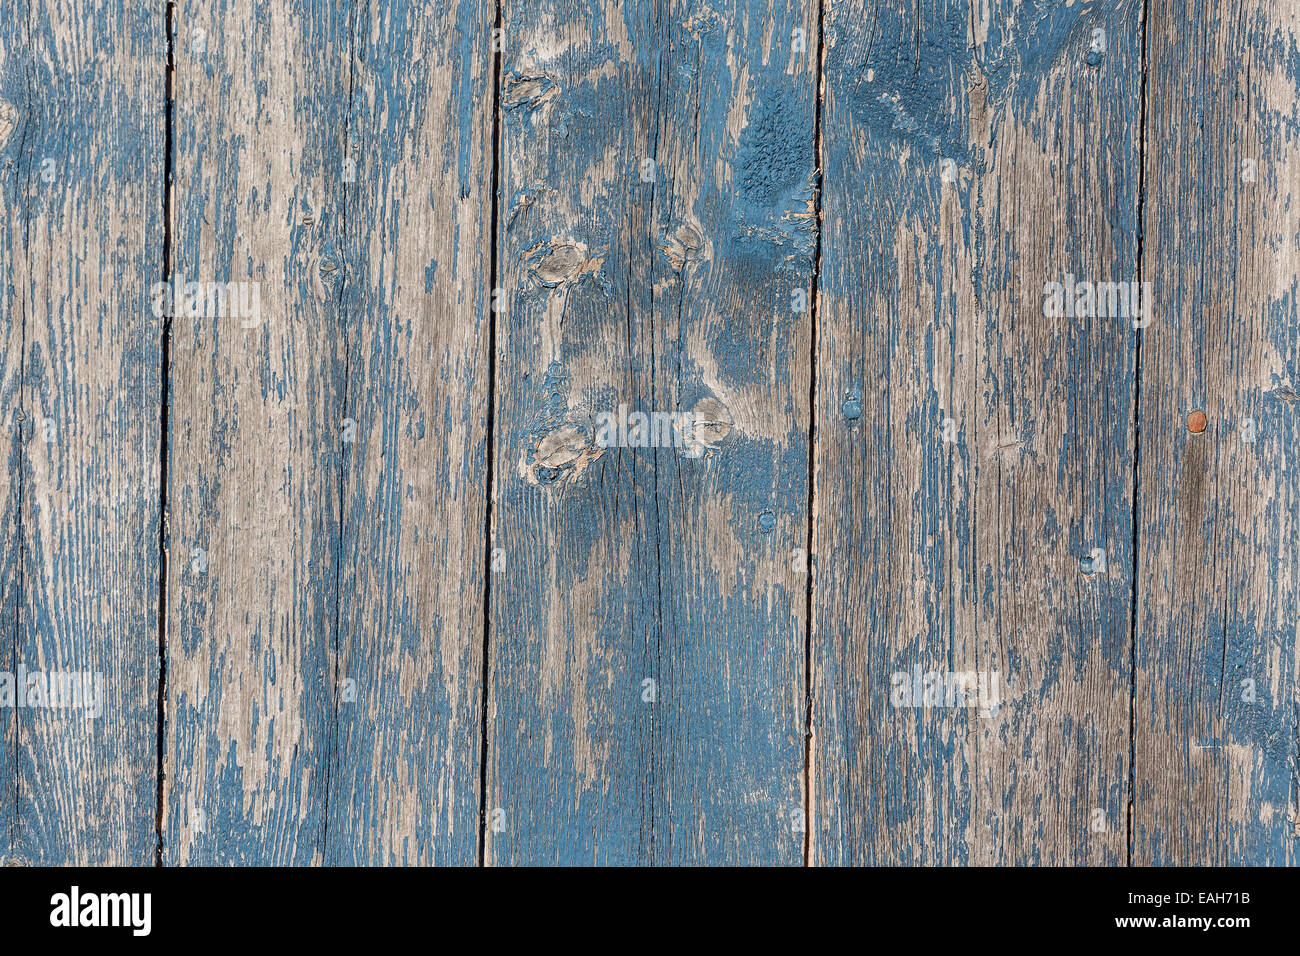 Fall Tree And Black Fence Wallpaper Old Wooden Barn Board With Distressed Blue Paint Stock